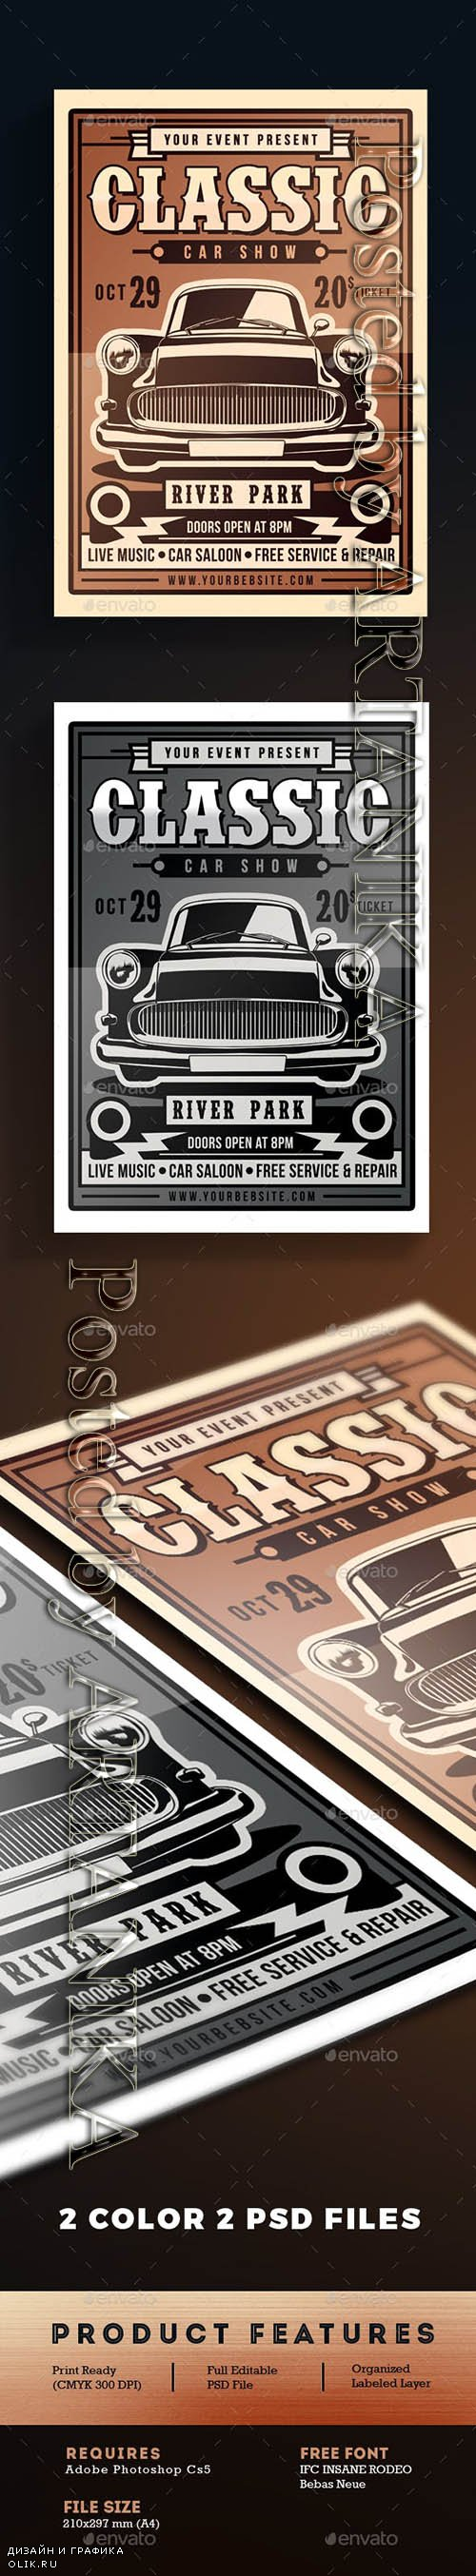 Graphicriver - Classic Car Show Flyer 18292715